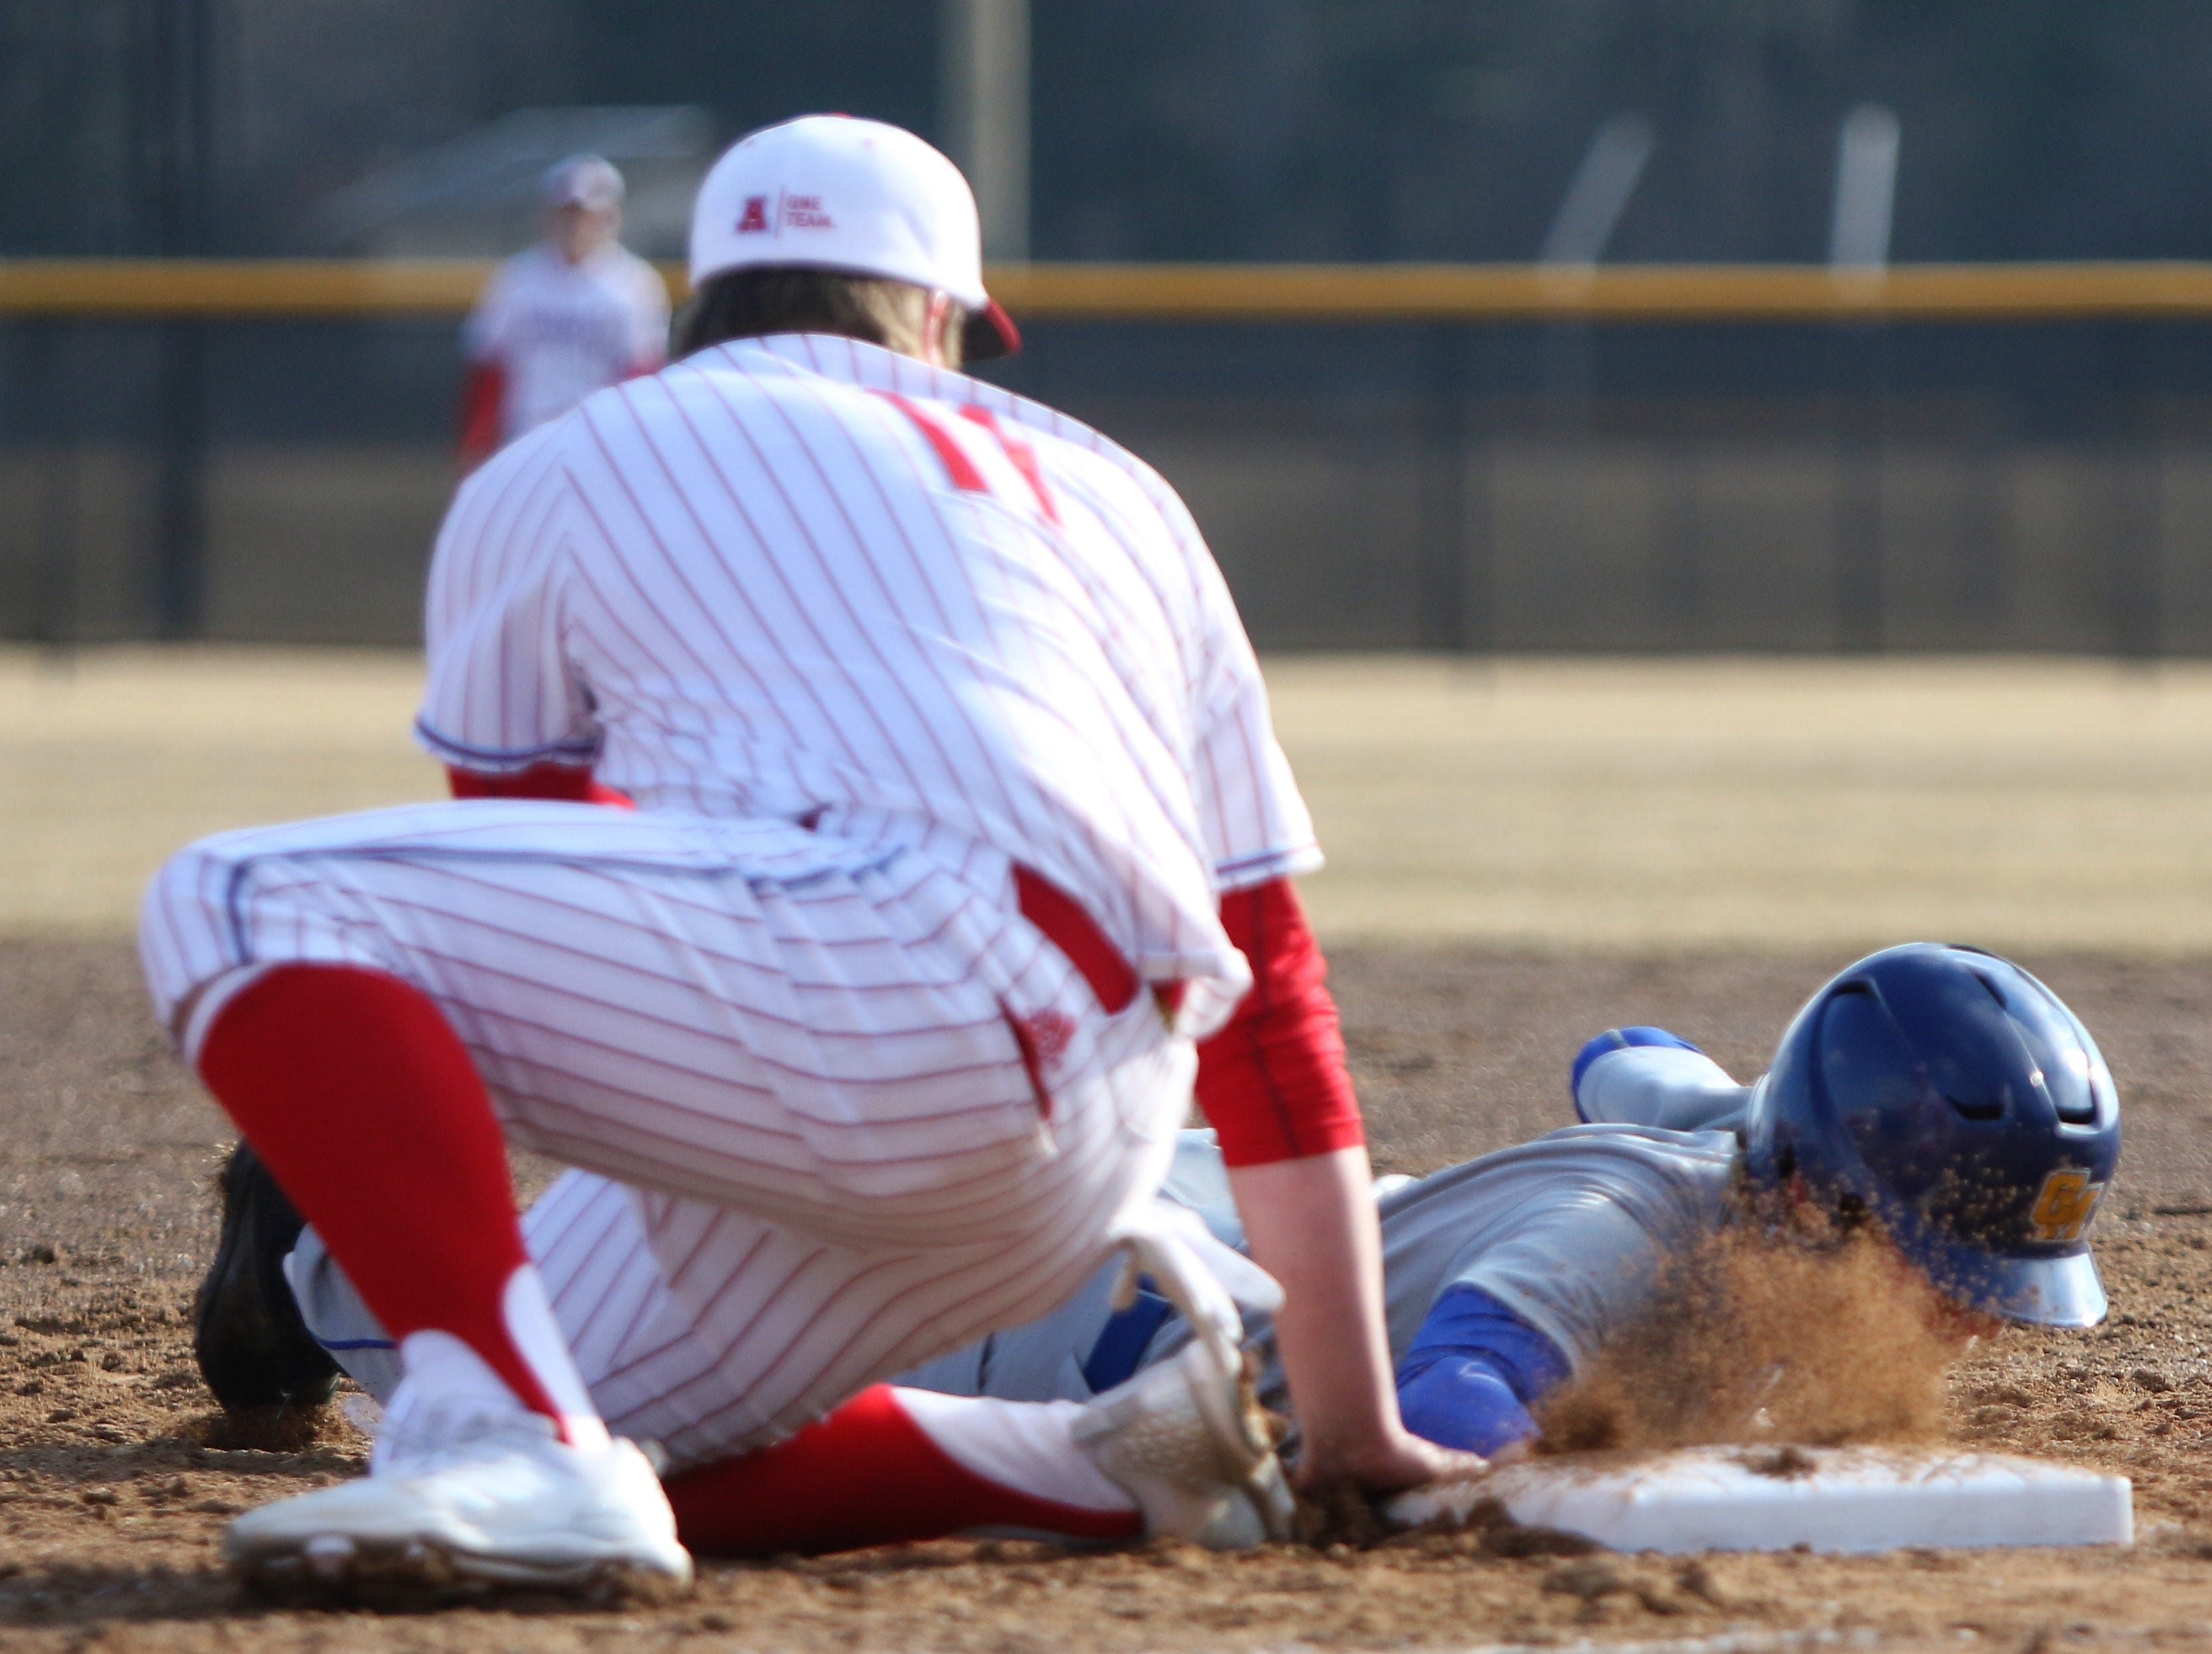 Catholic Memorial freshman Rory Fox dives safely into first base before Arrowhead's Tyler LaMack can apply the tag during a game on April 2, 2019.